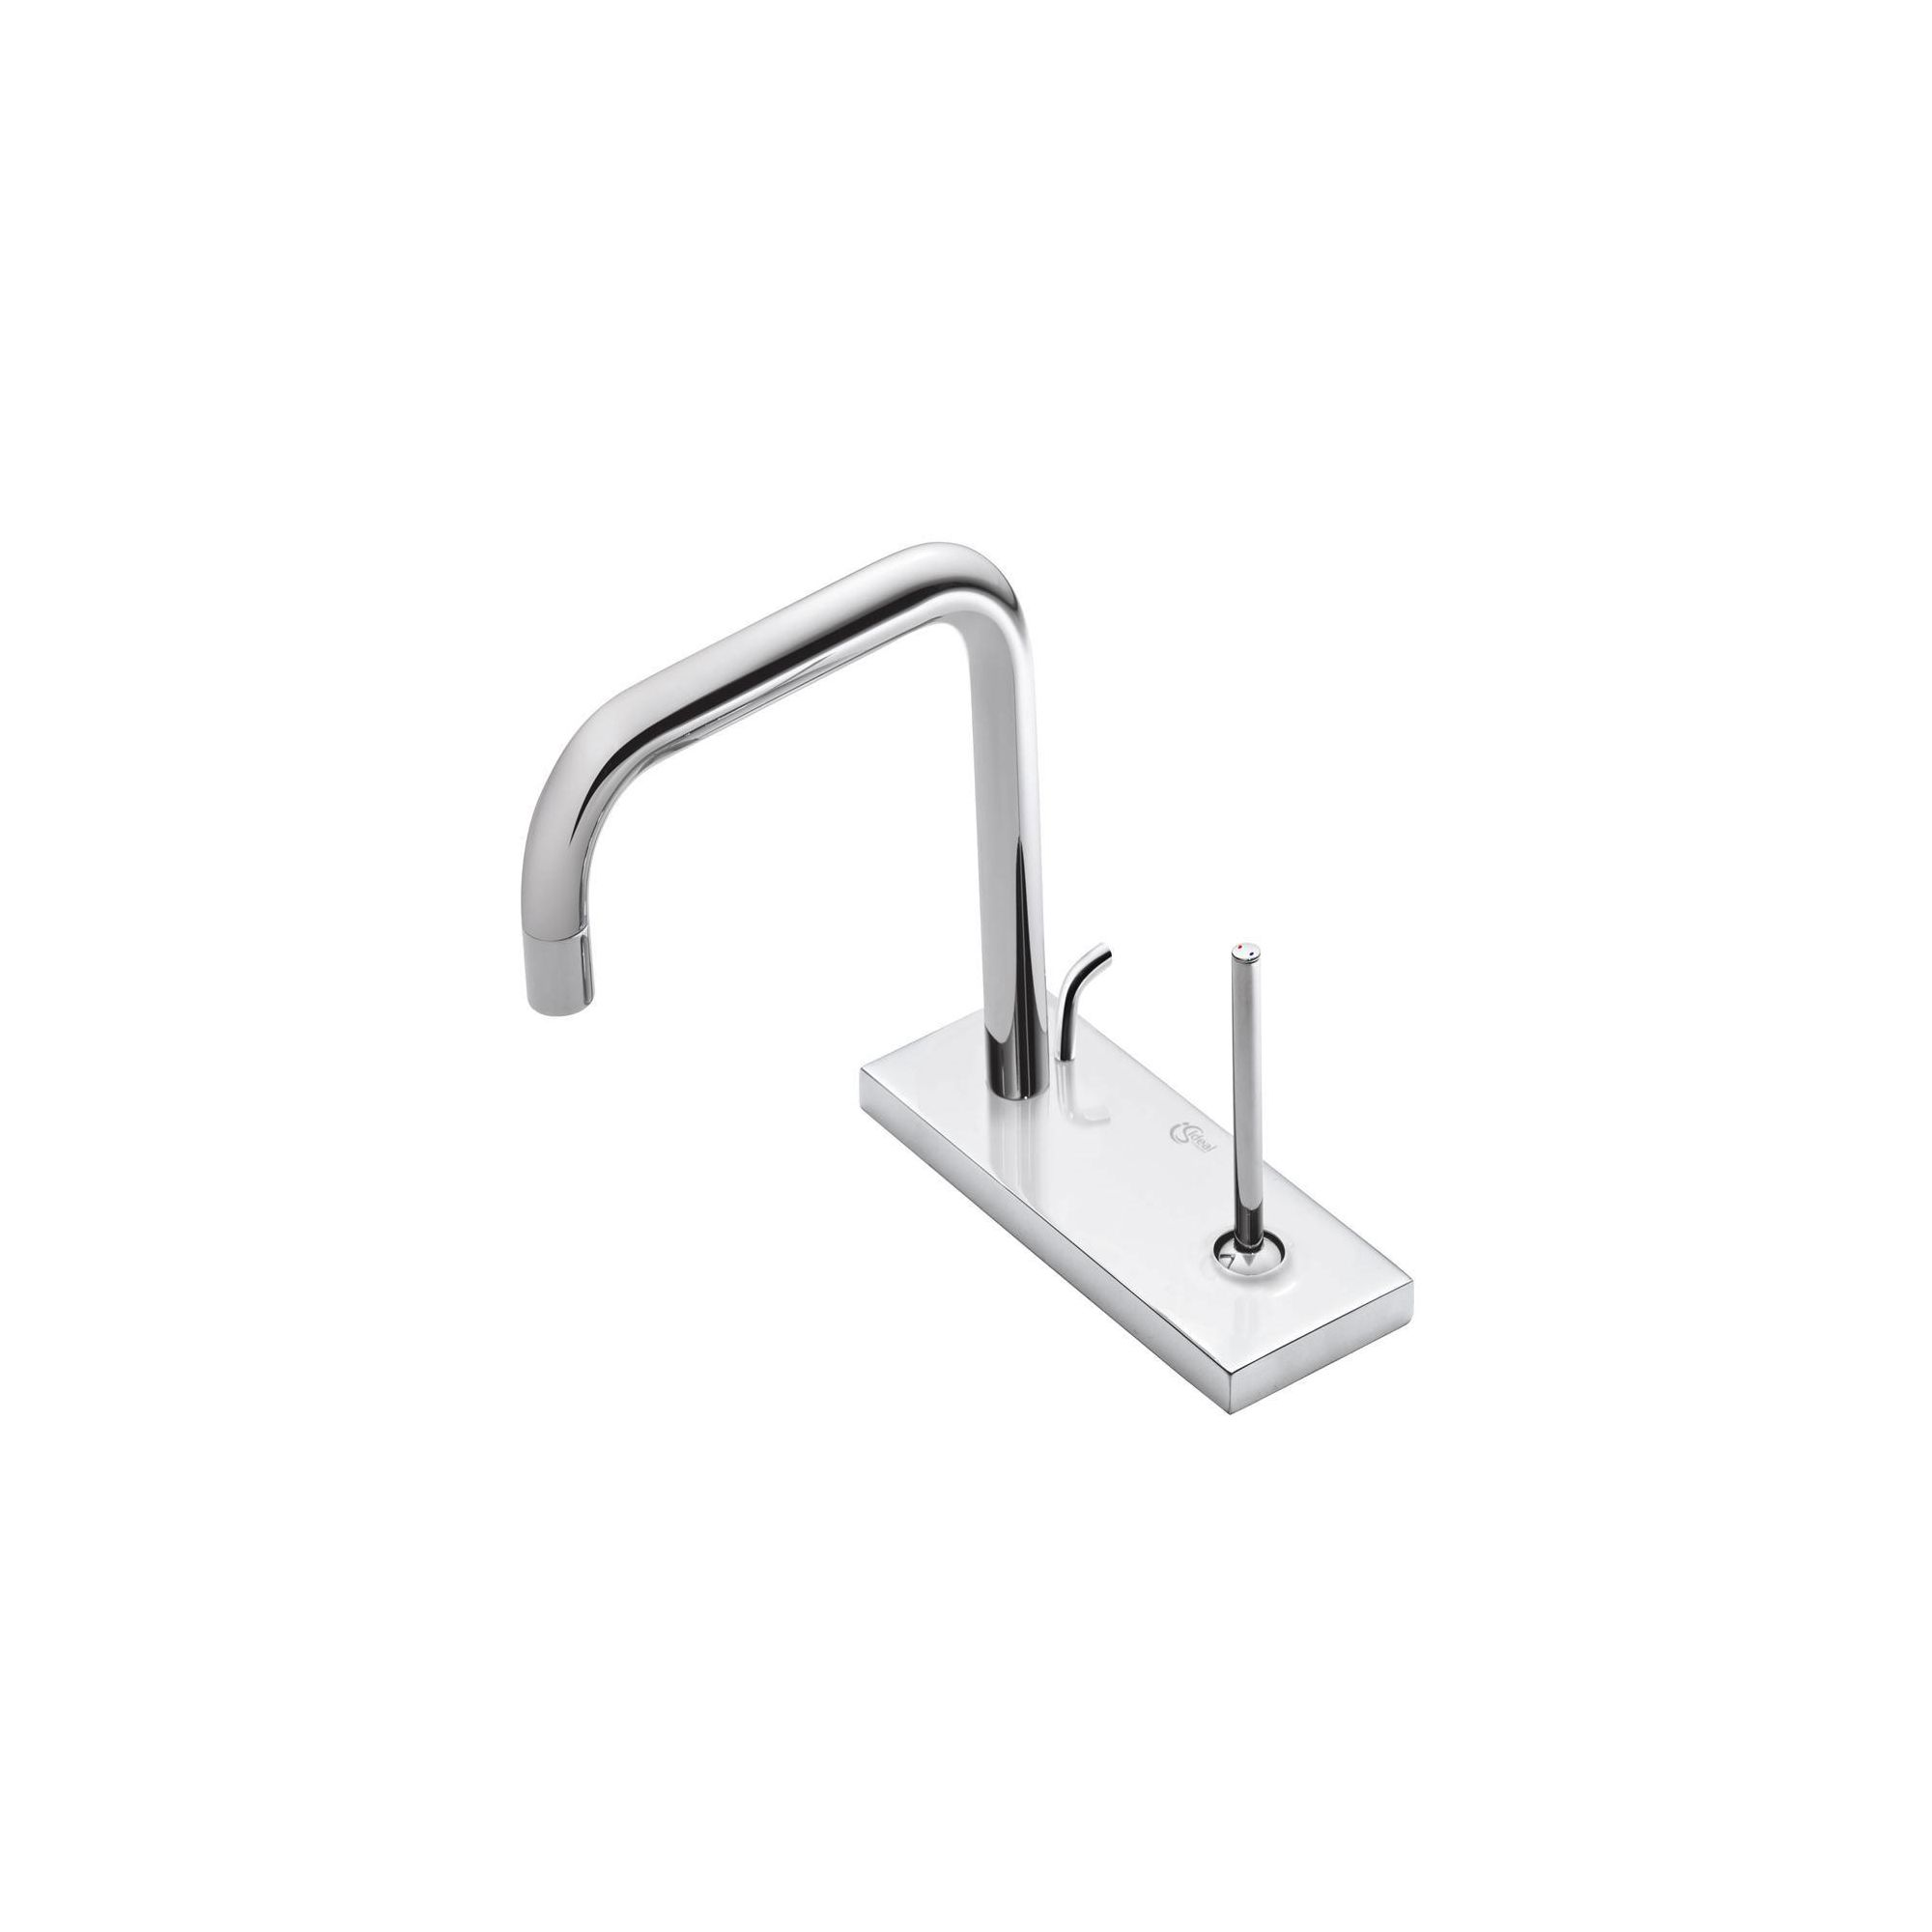 Ideal Standard Simply U 2 Tap Hole Cylindrical Spout Basin Mixer Tap with 1 Rectangular Backplate at Tesco Direct